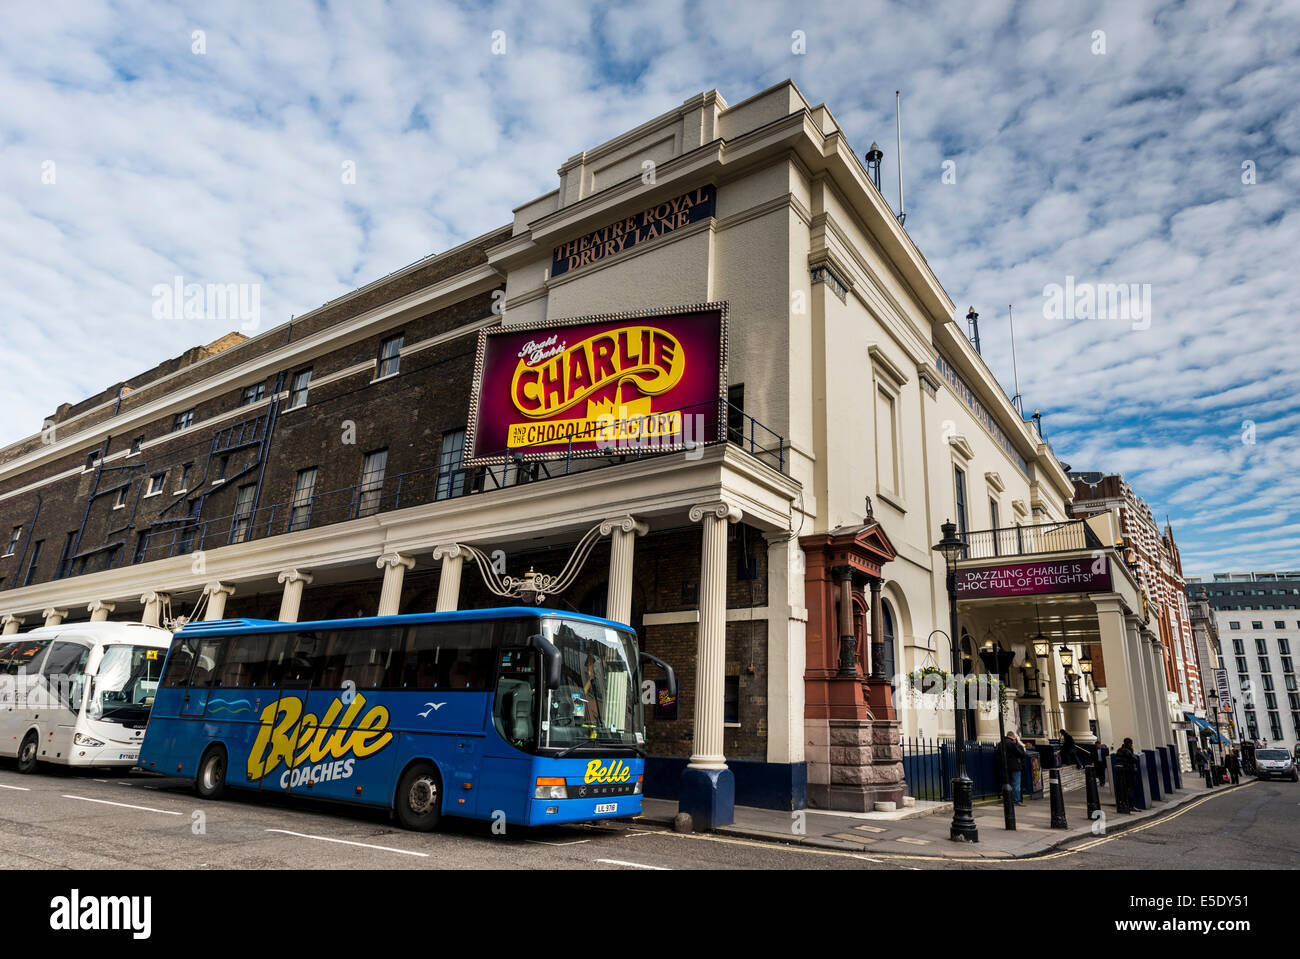 The Theatre Royal, Drury Lane, commonly known as Drury Lane, is a West End theatre in Covent Garden, London - Stock Image